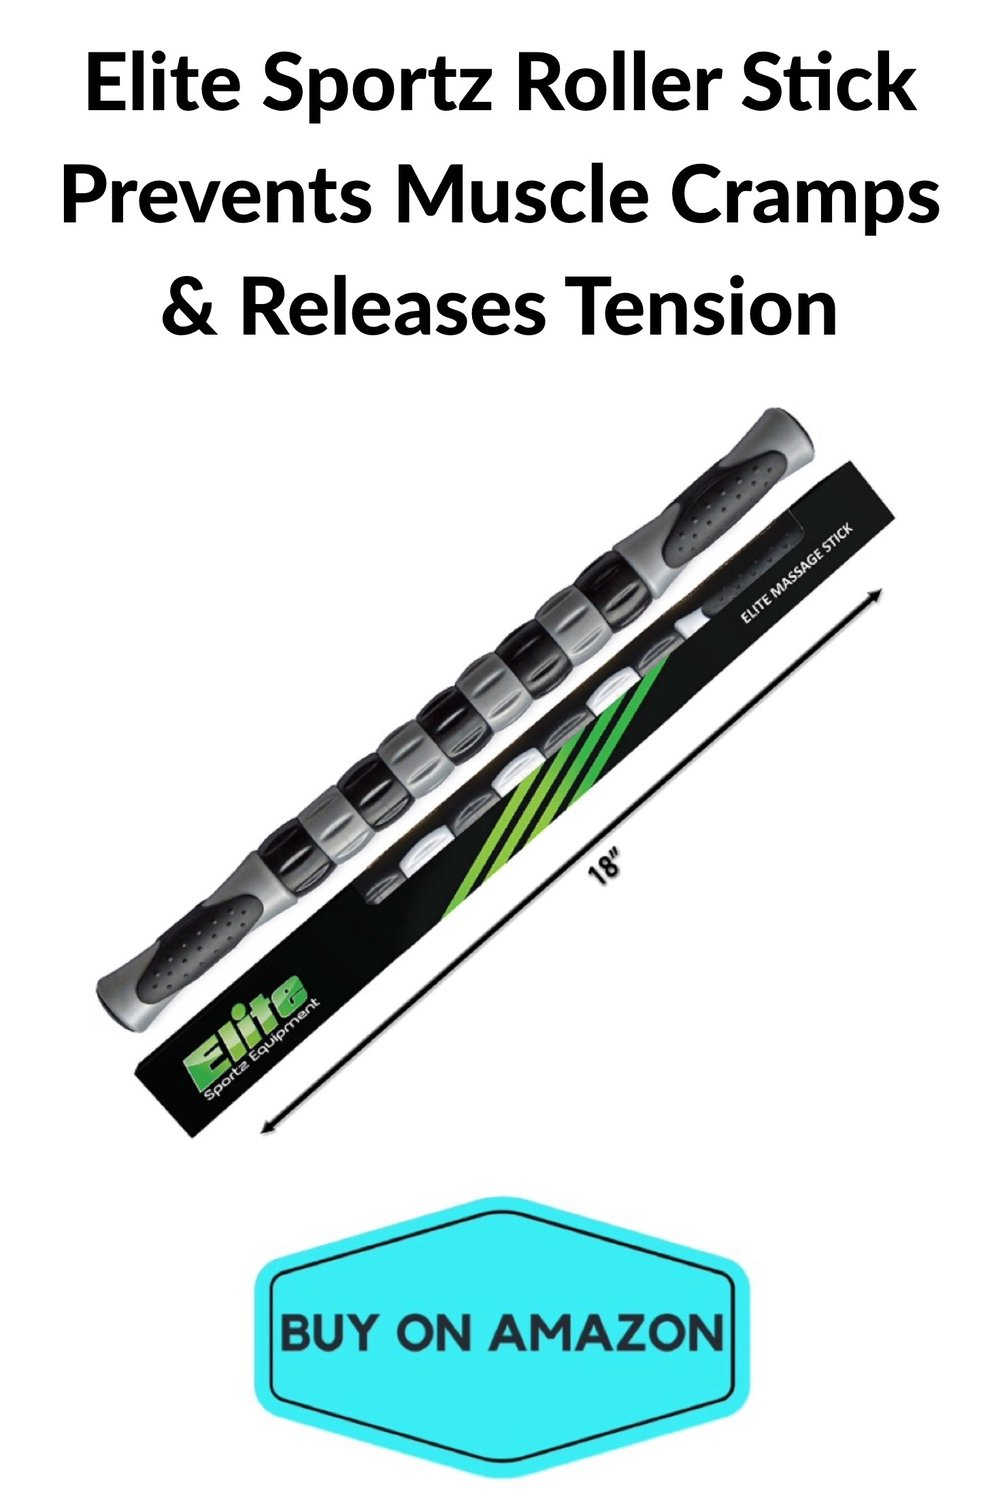 Elite Sportz Roller Stick: Prevents Muscle Cramps & Releases Tension